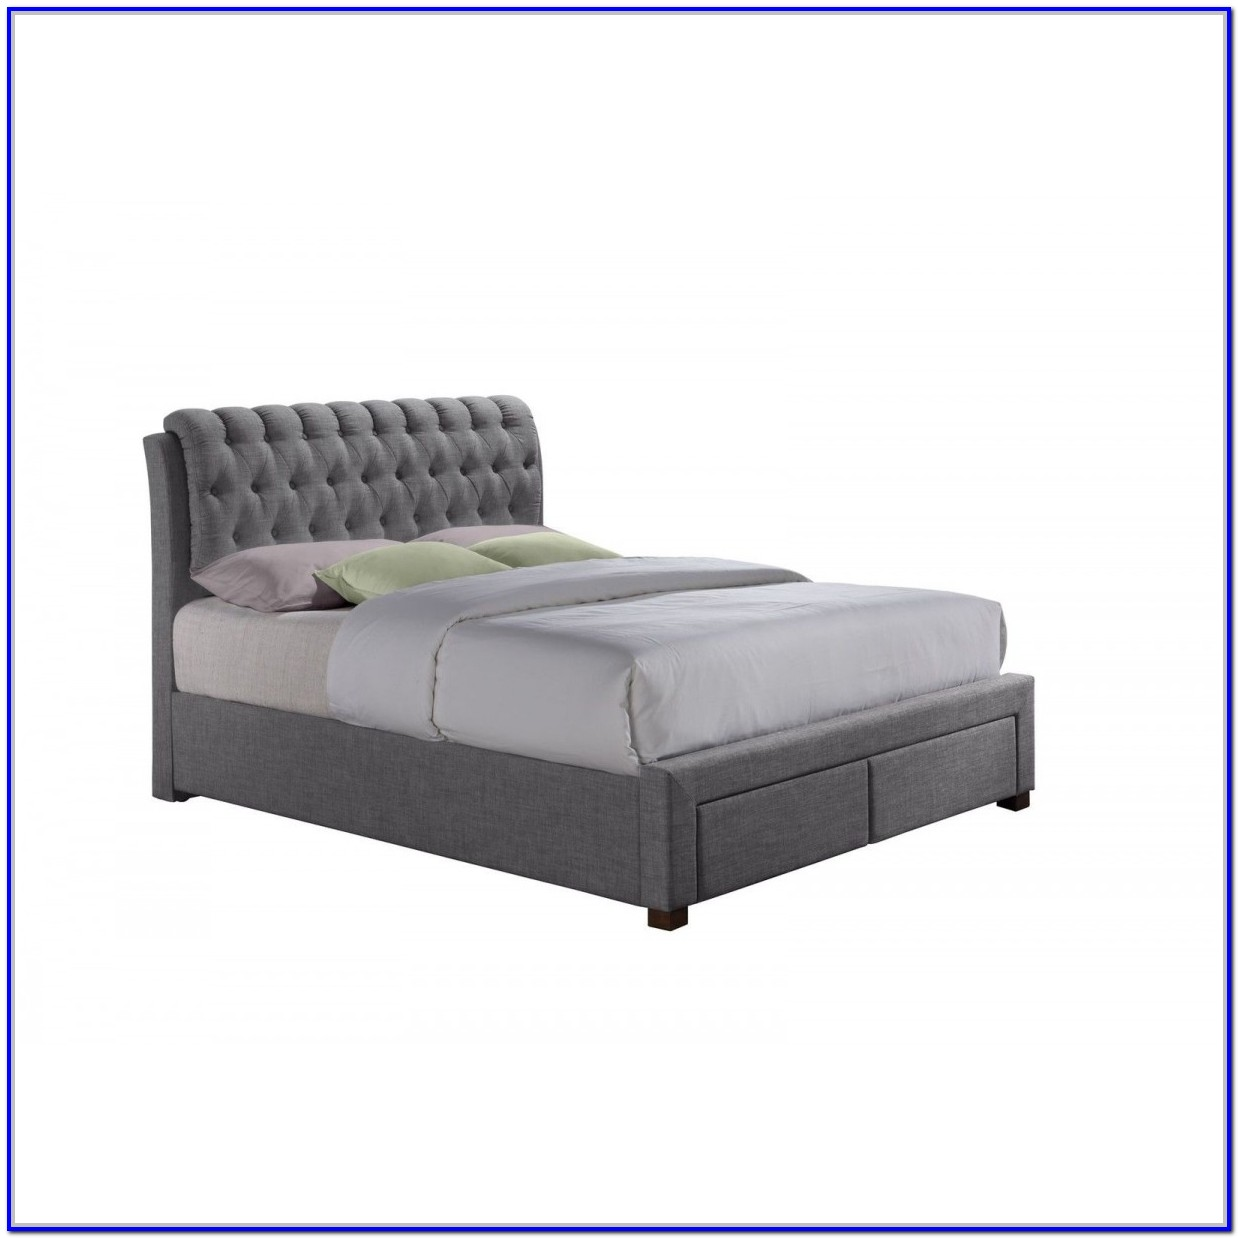 Grey Fabric Double Bed Frame With Storage